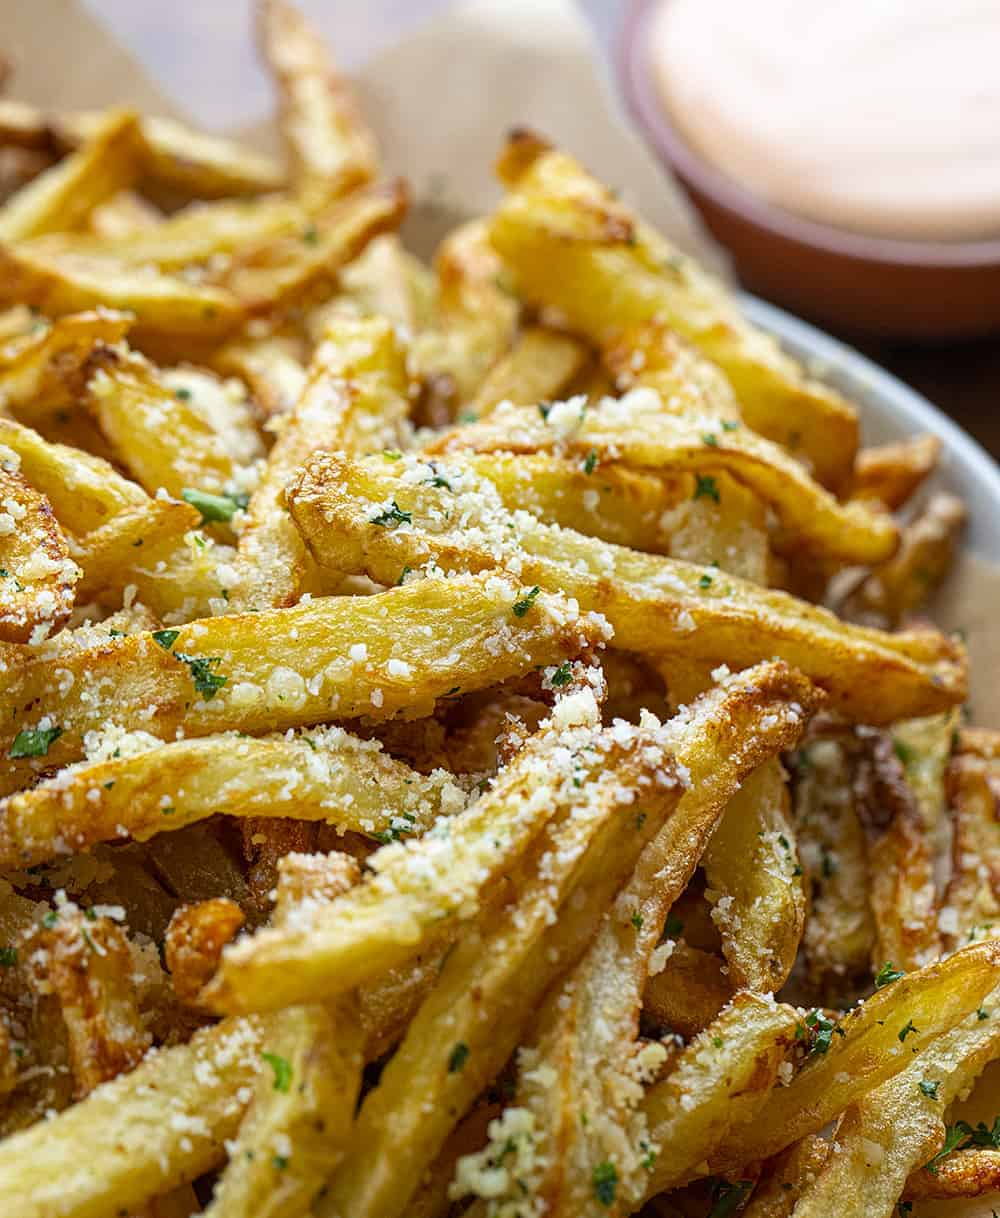 Close Up of Garlic Parmesan French Fries made in Air Fryer